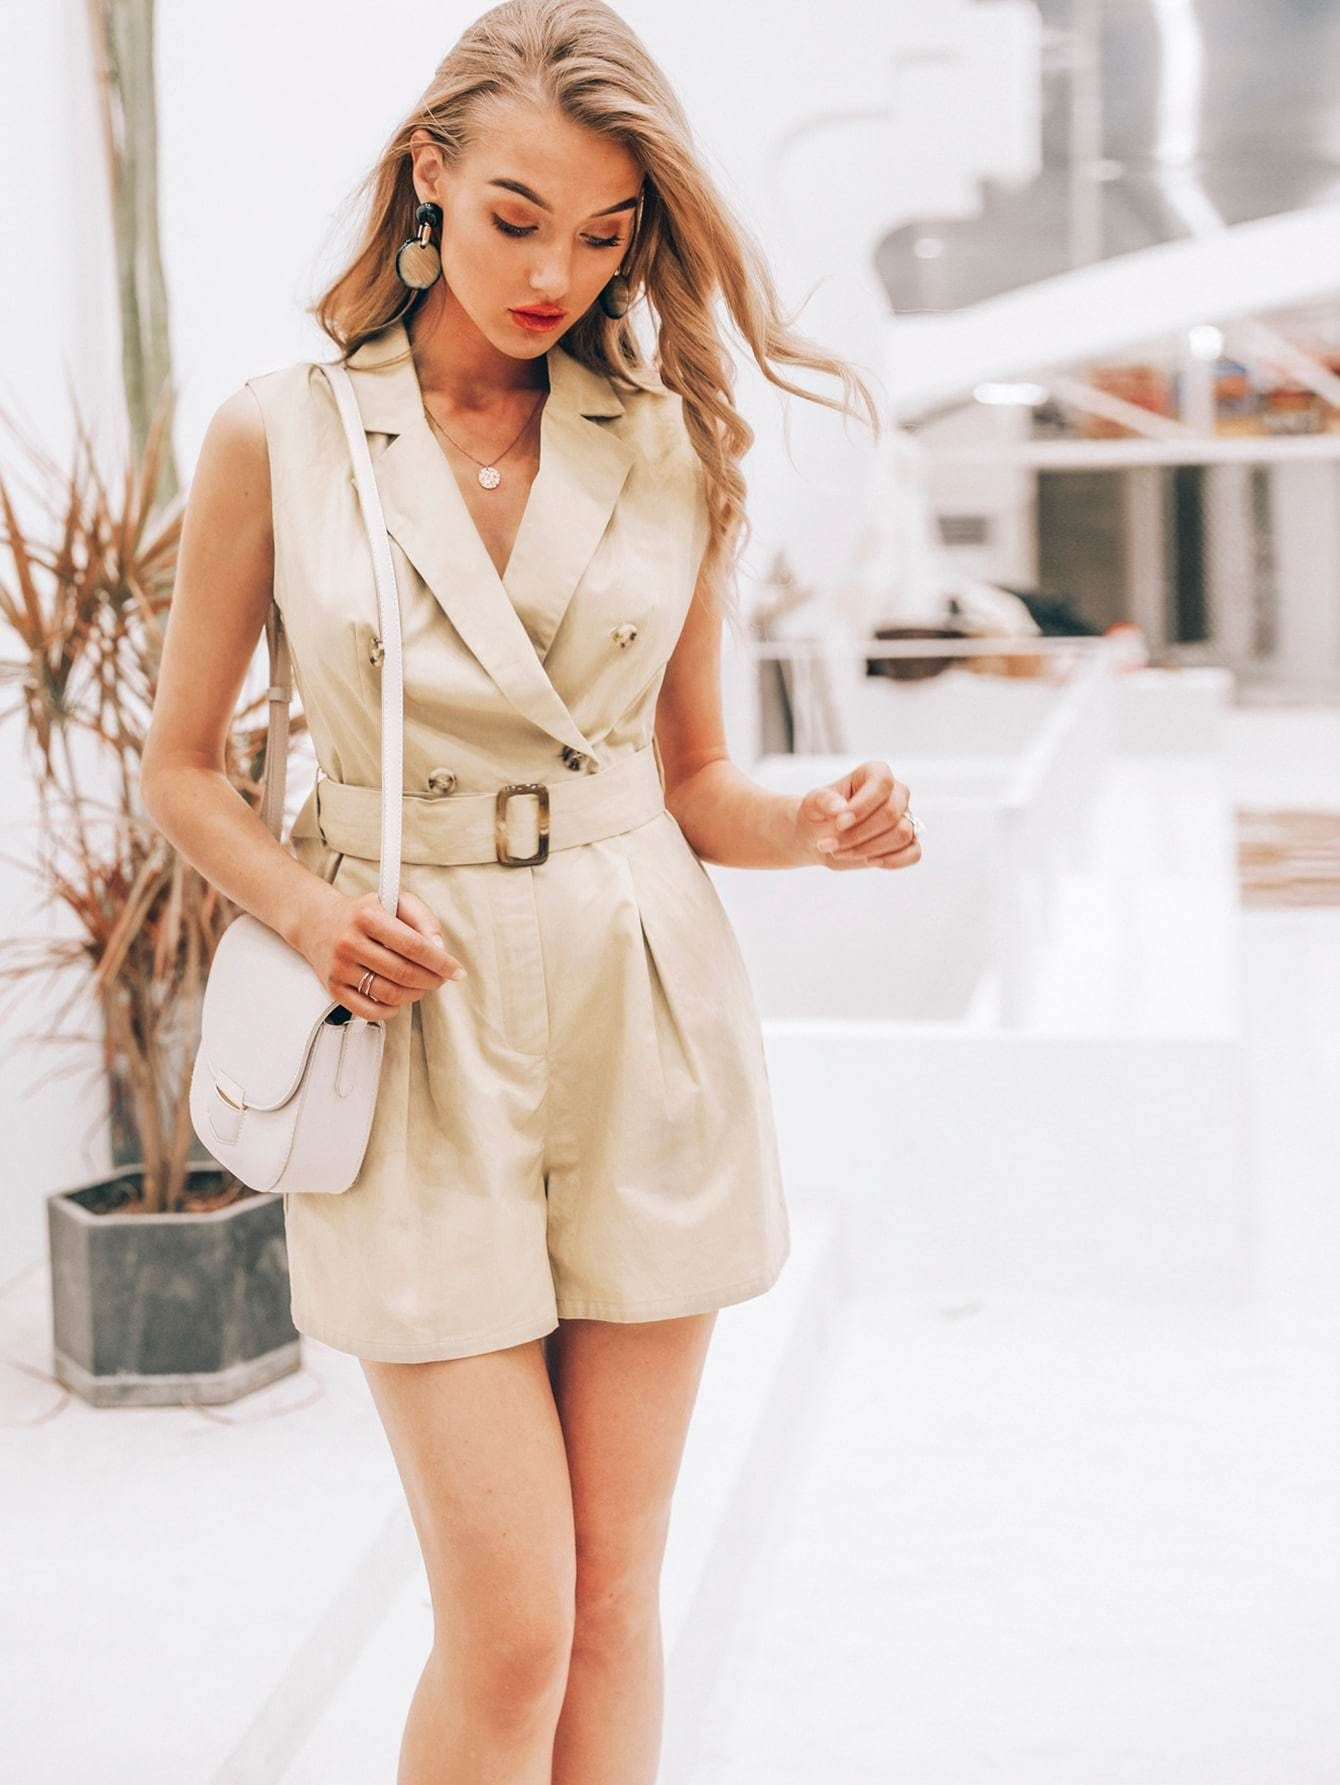 0992e95f5b Notch Collar Buckle Belted Blazer Romper - Popviva #summer #year #fall  #spring